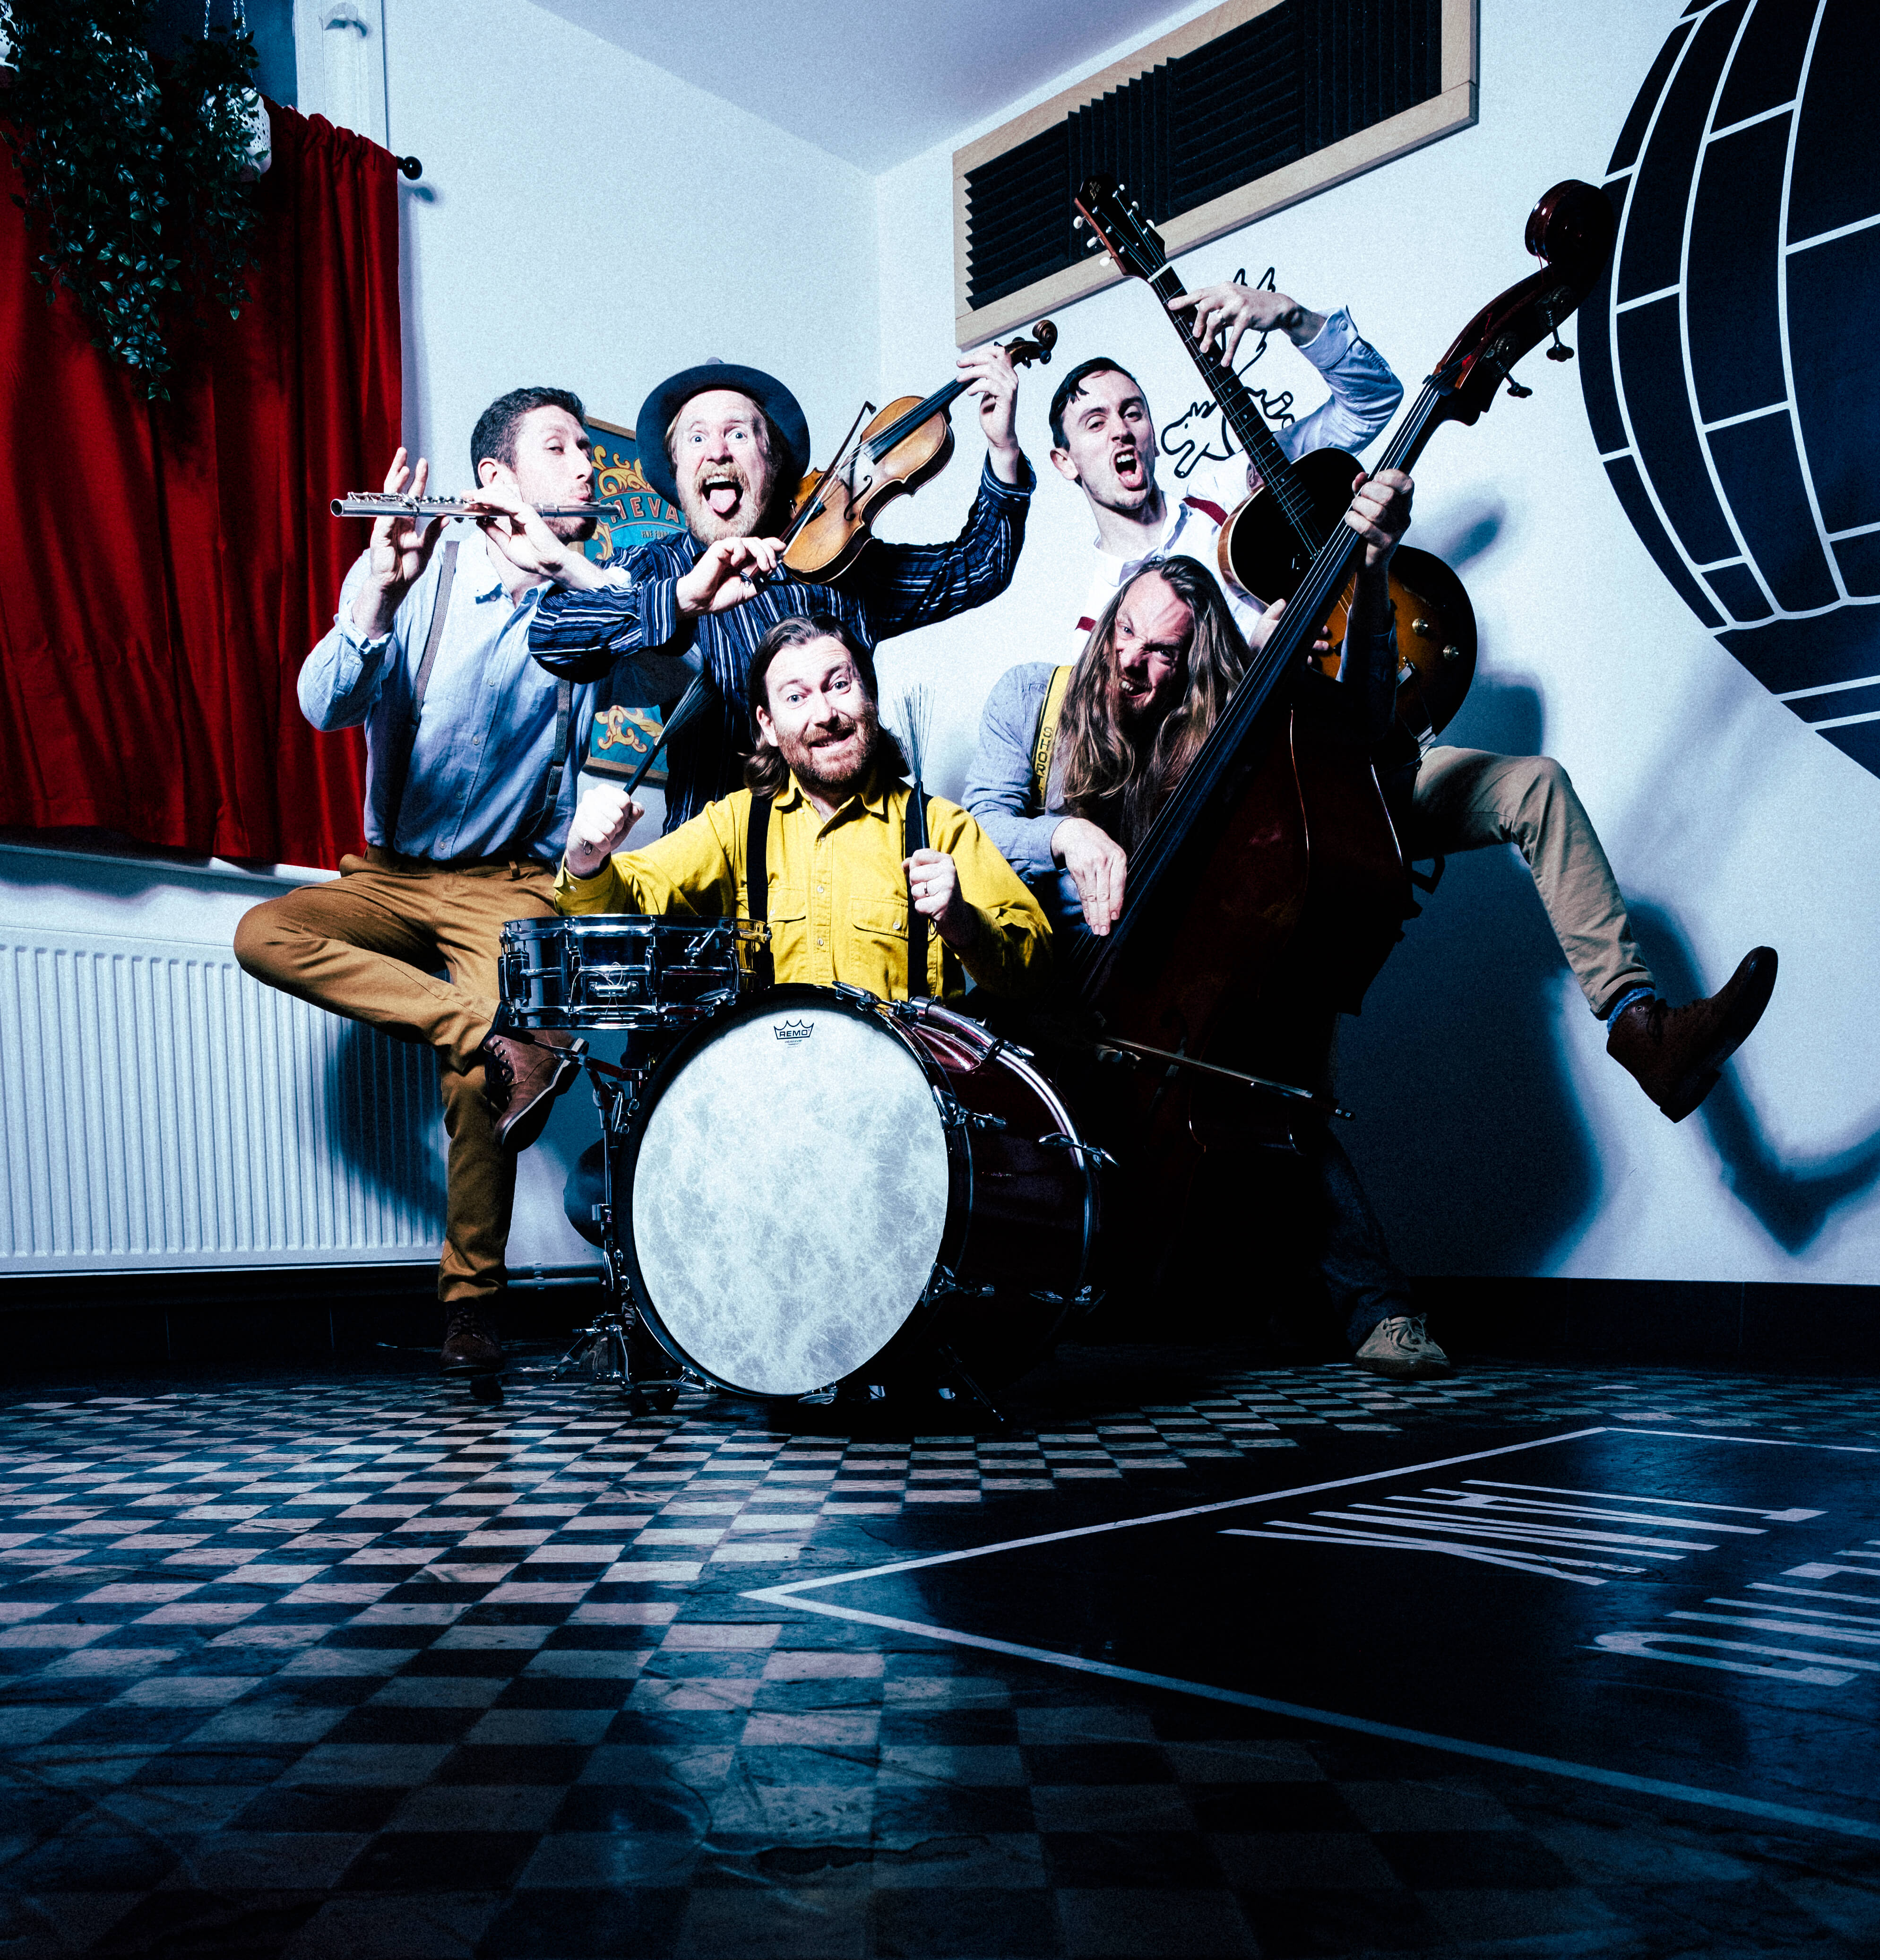 Sheelanagig + Special Guests The Drystones